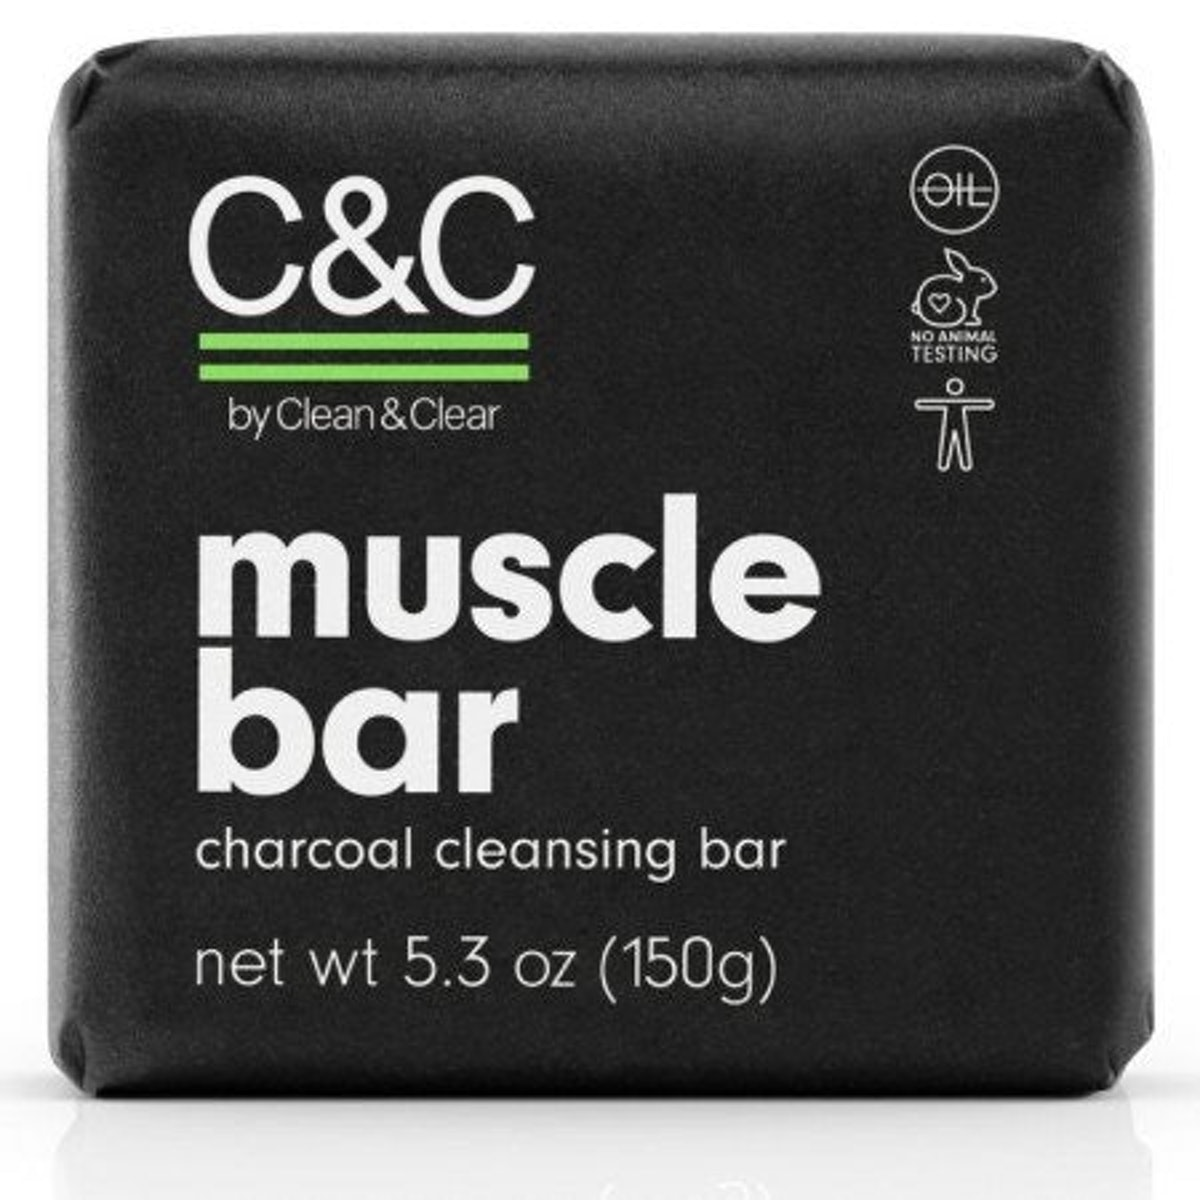 Muscle Bar Charcoal Cleansing Bar